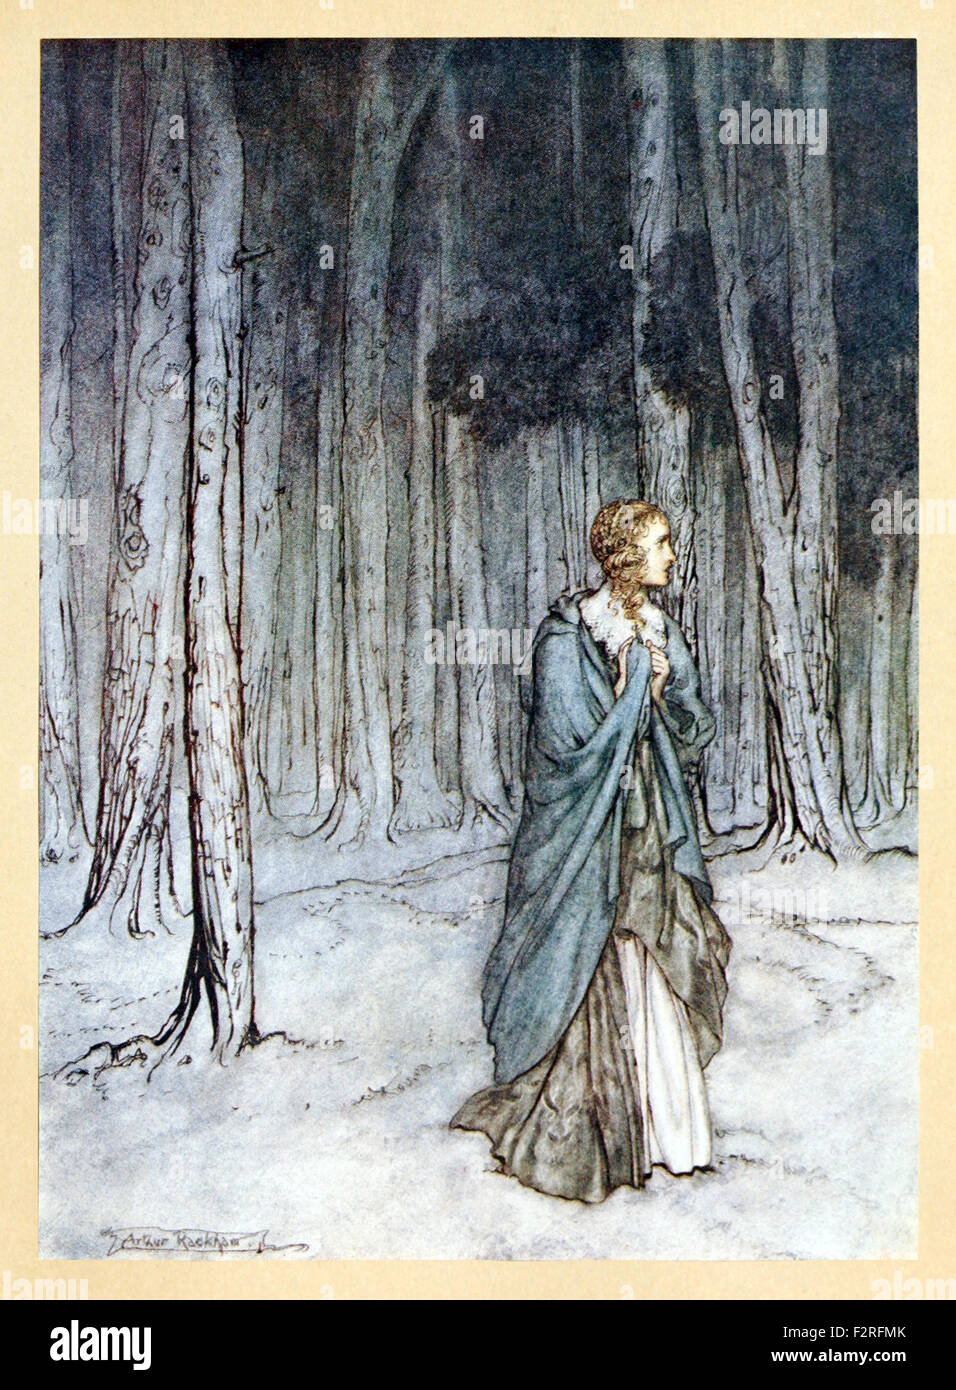 'The Lady enters' from 'Comus' by John Milton, illustration by Arthur Rackham (1867-1939). See description - Stock Image